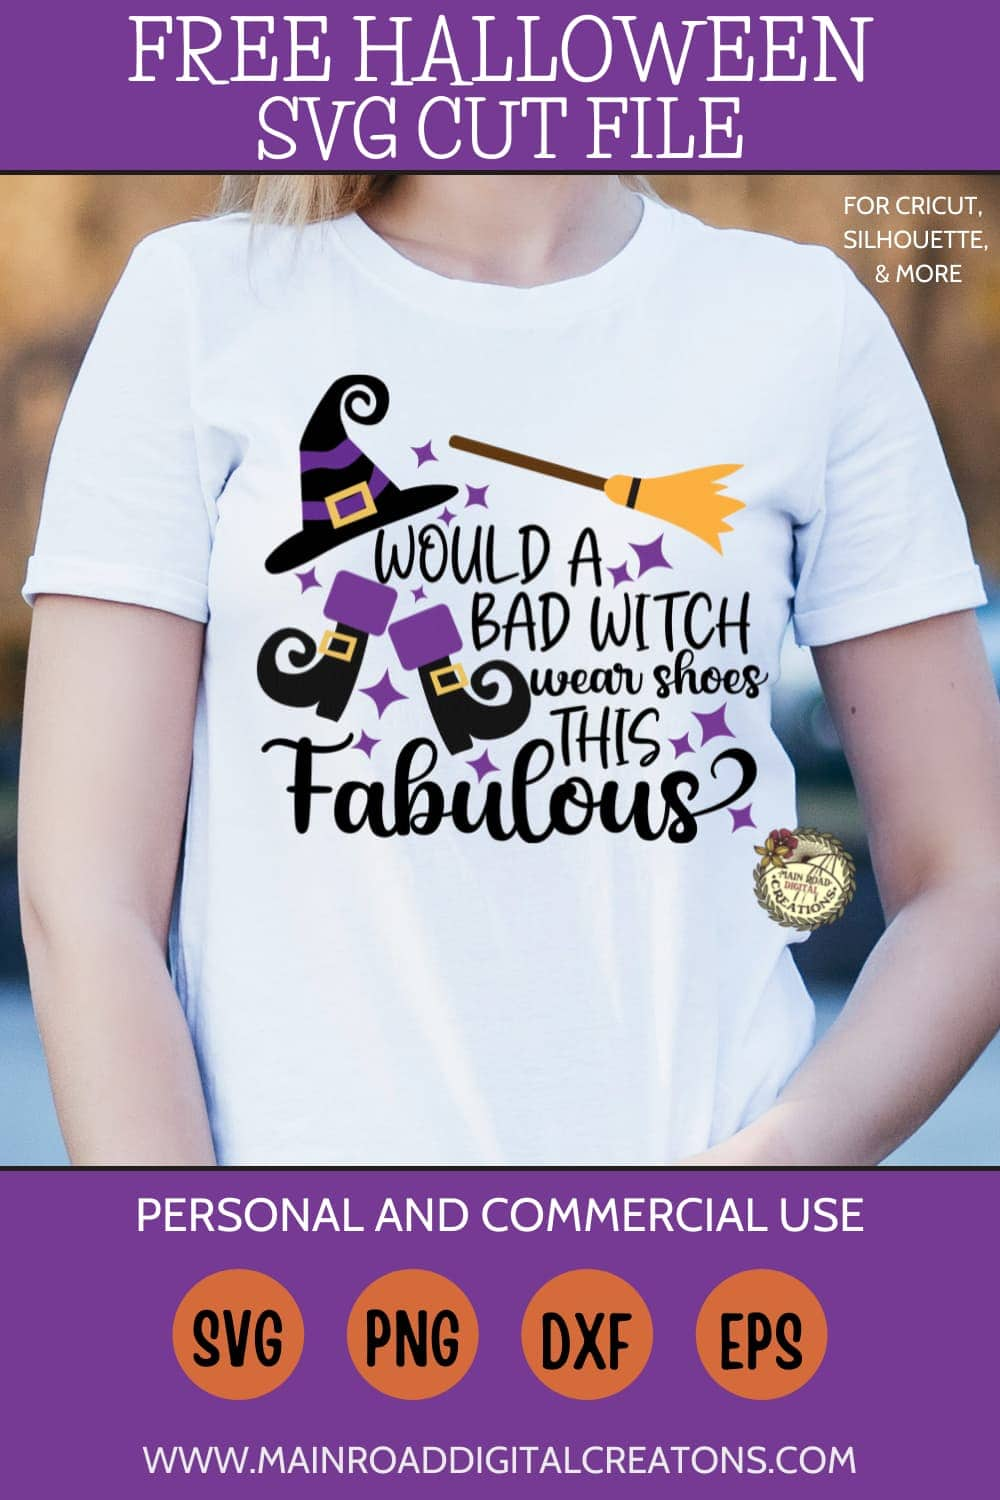 halloween svg, free halloween svg files, witch shoes svg, broom svg, witch hat svg, cricut crafting, halloween decorations, fall crafting, happy halloween, funny halloween quotes